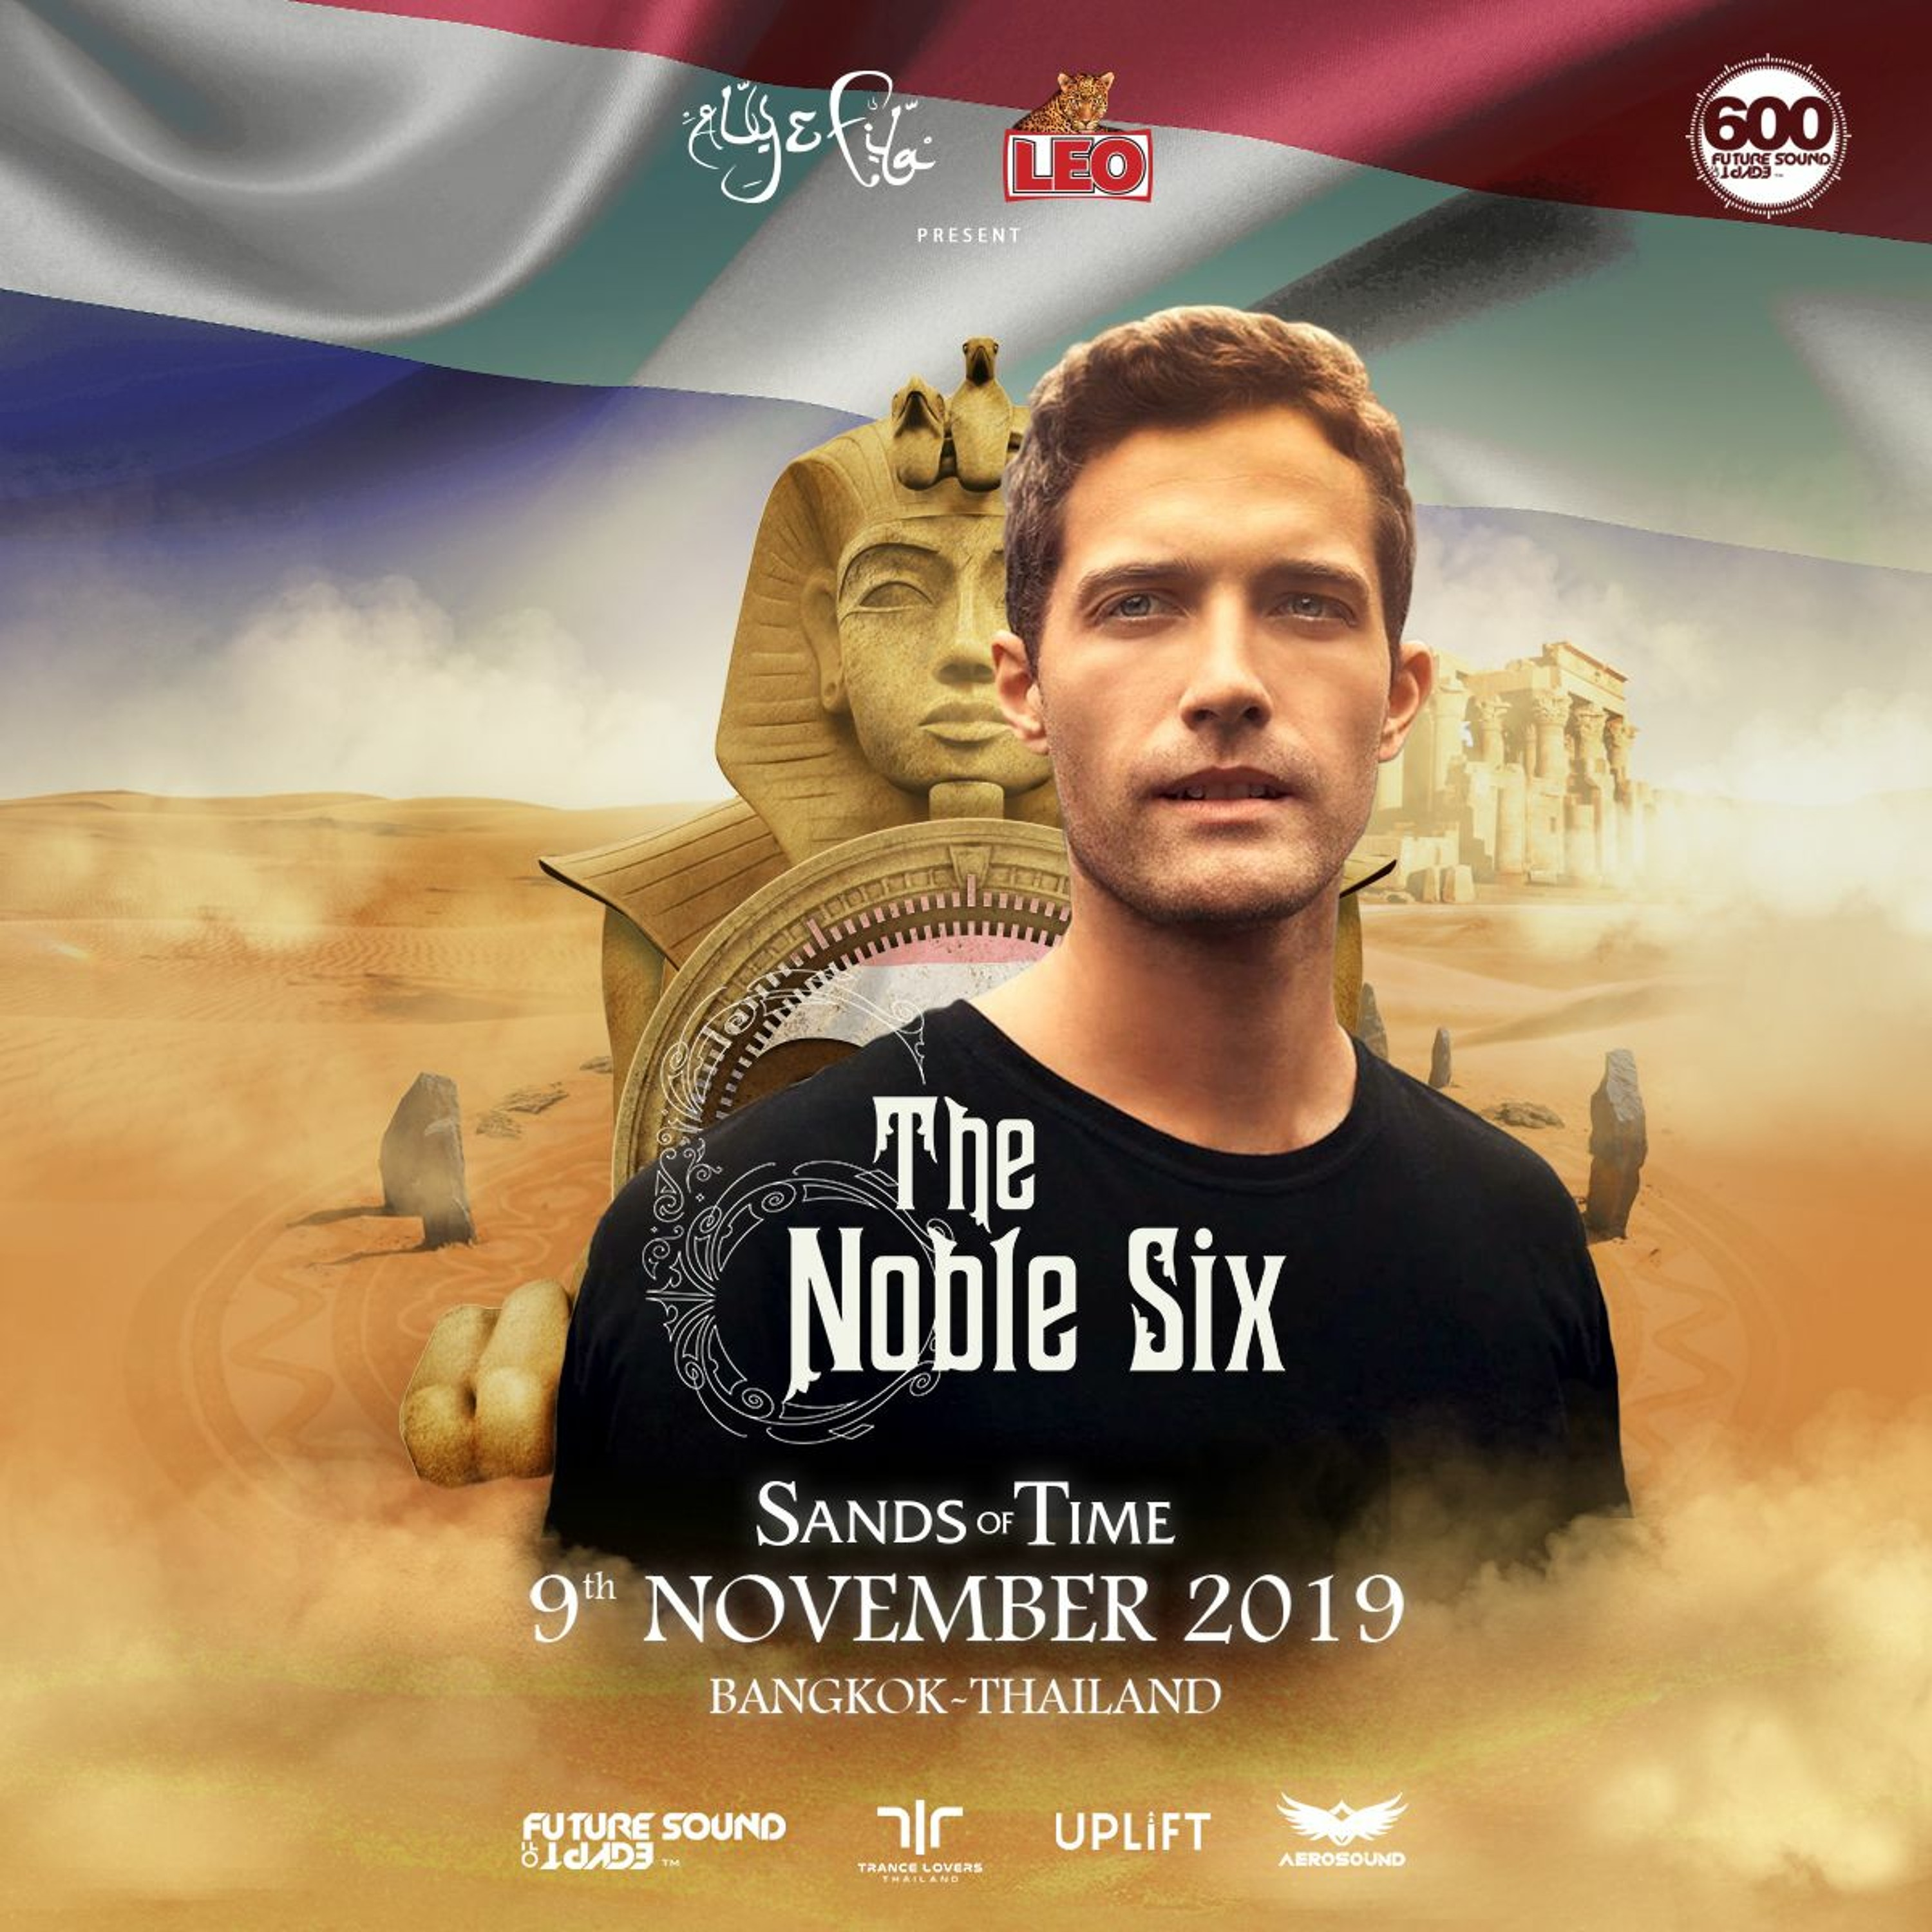 The Noble Six - Live @ FSOE 600 Bangkok 09/11/2019